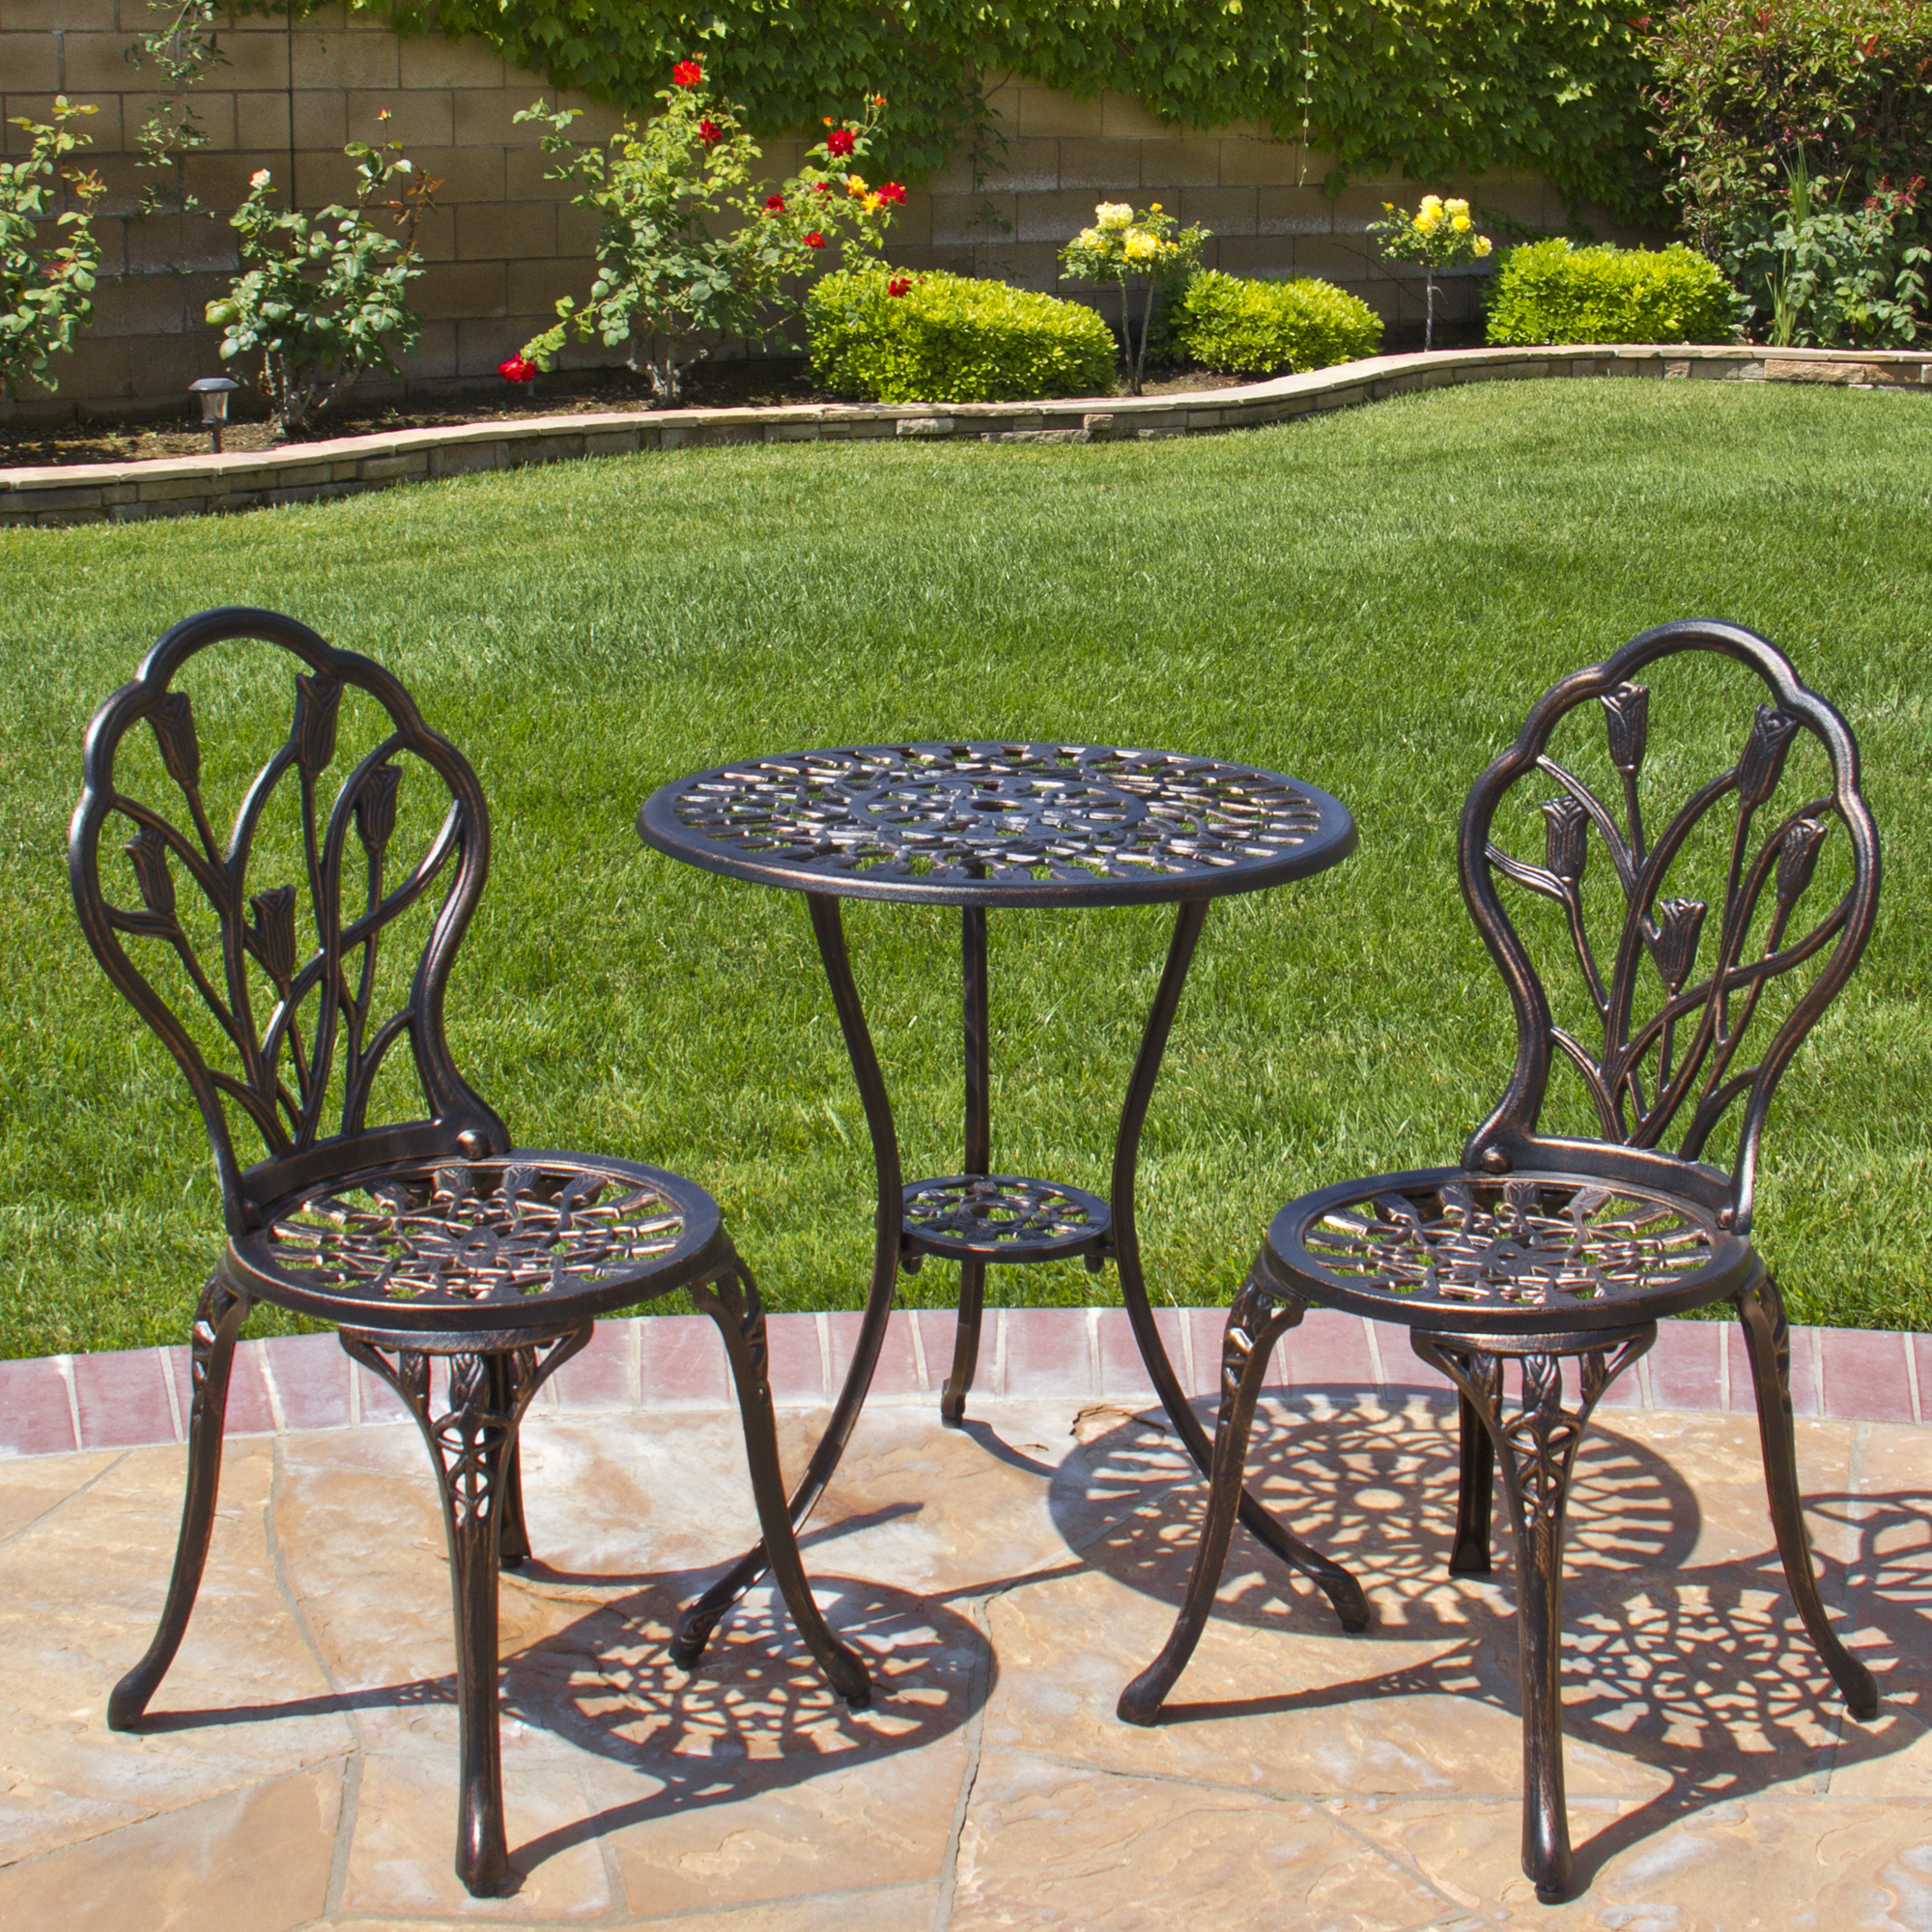 antique cast iron garden table and chairs office chair accessories back pain best choice products aluminum 3 piece outdoor bistro set walmart com